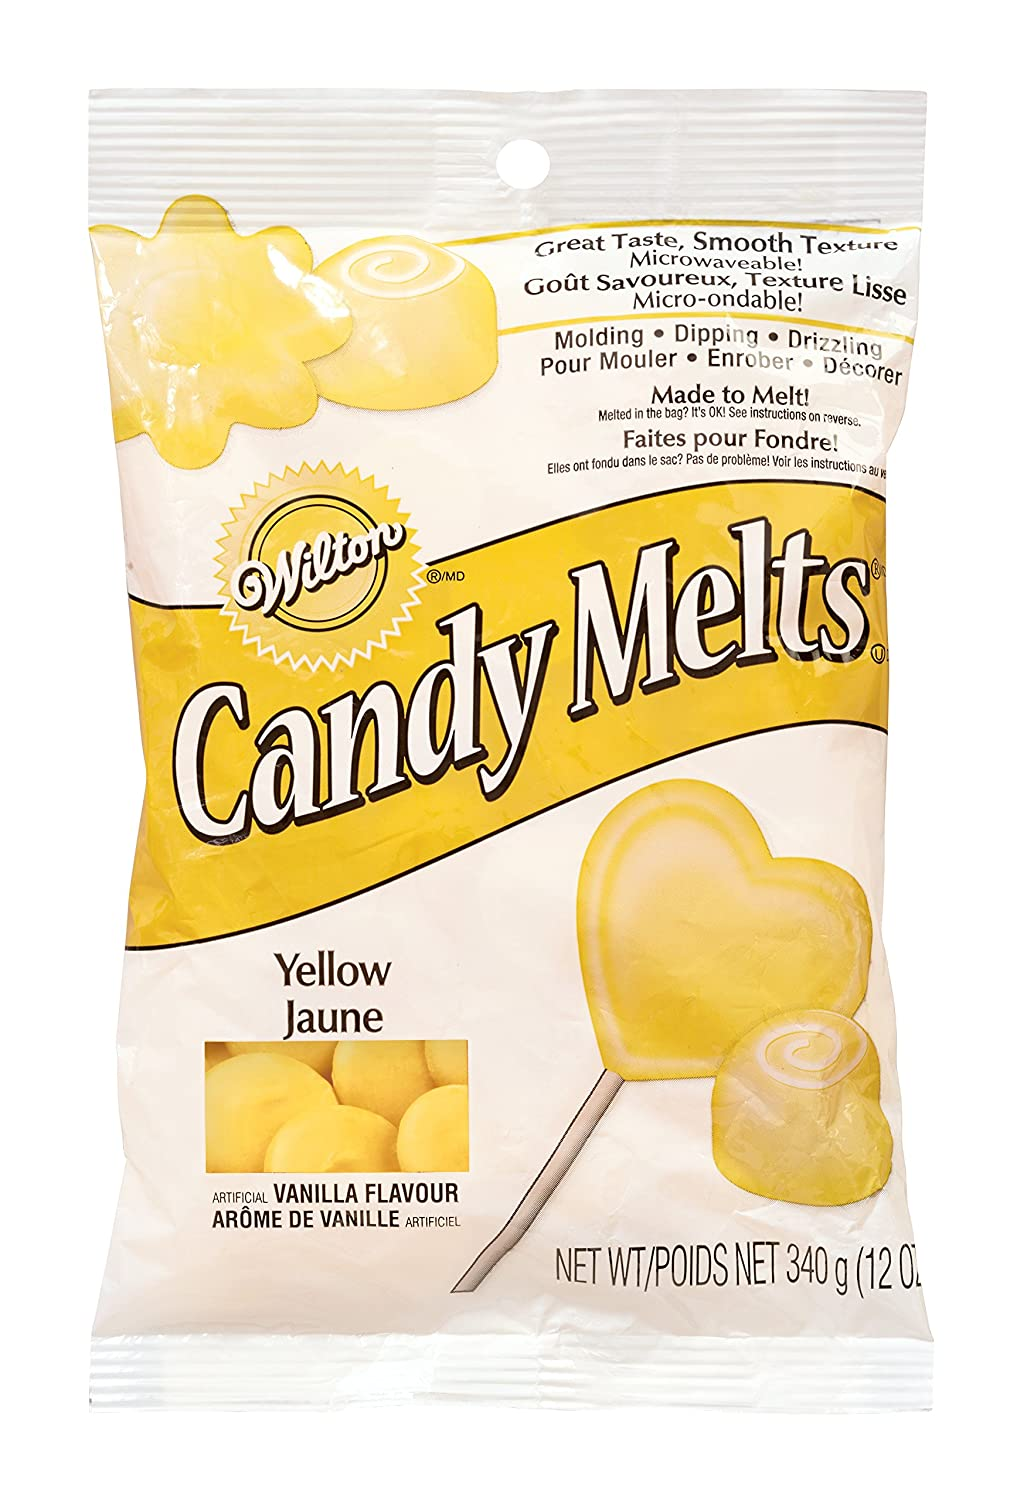 Wilton 2201-1411 Candy Melts Baking Tool, 12-Ounce, Yellow